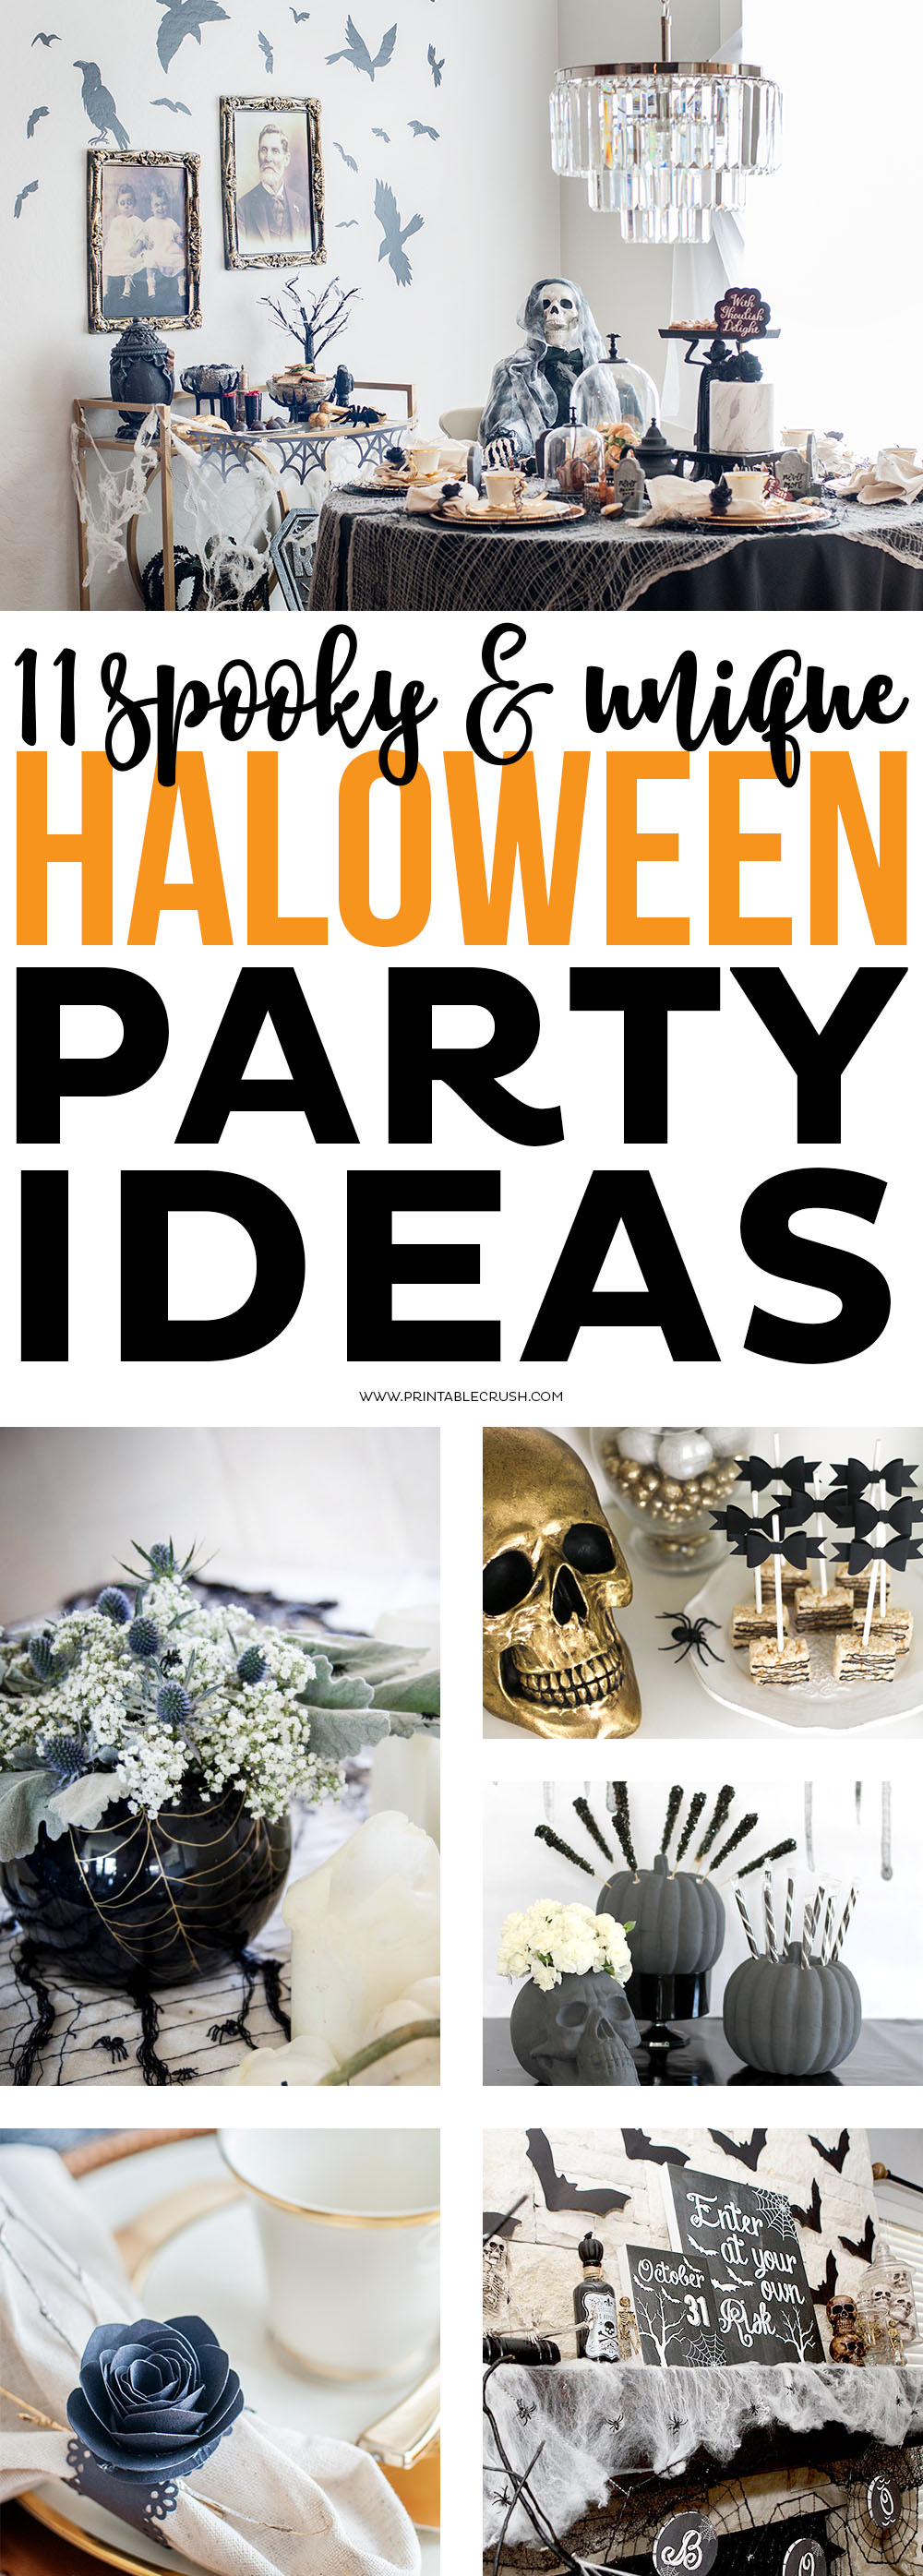 If you are planning on hosting a Halloween party this year, check out these 11 Scary & Unique Halloween Party Ideas for both kids and adults! via @printablecrush